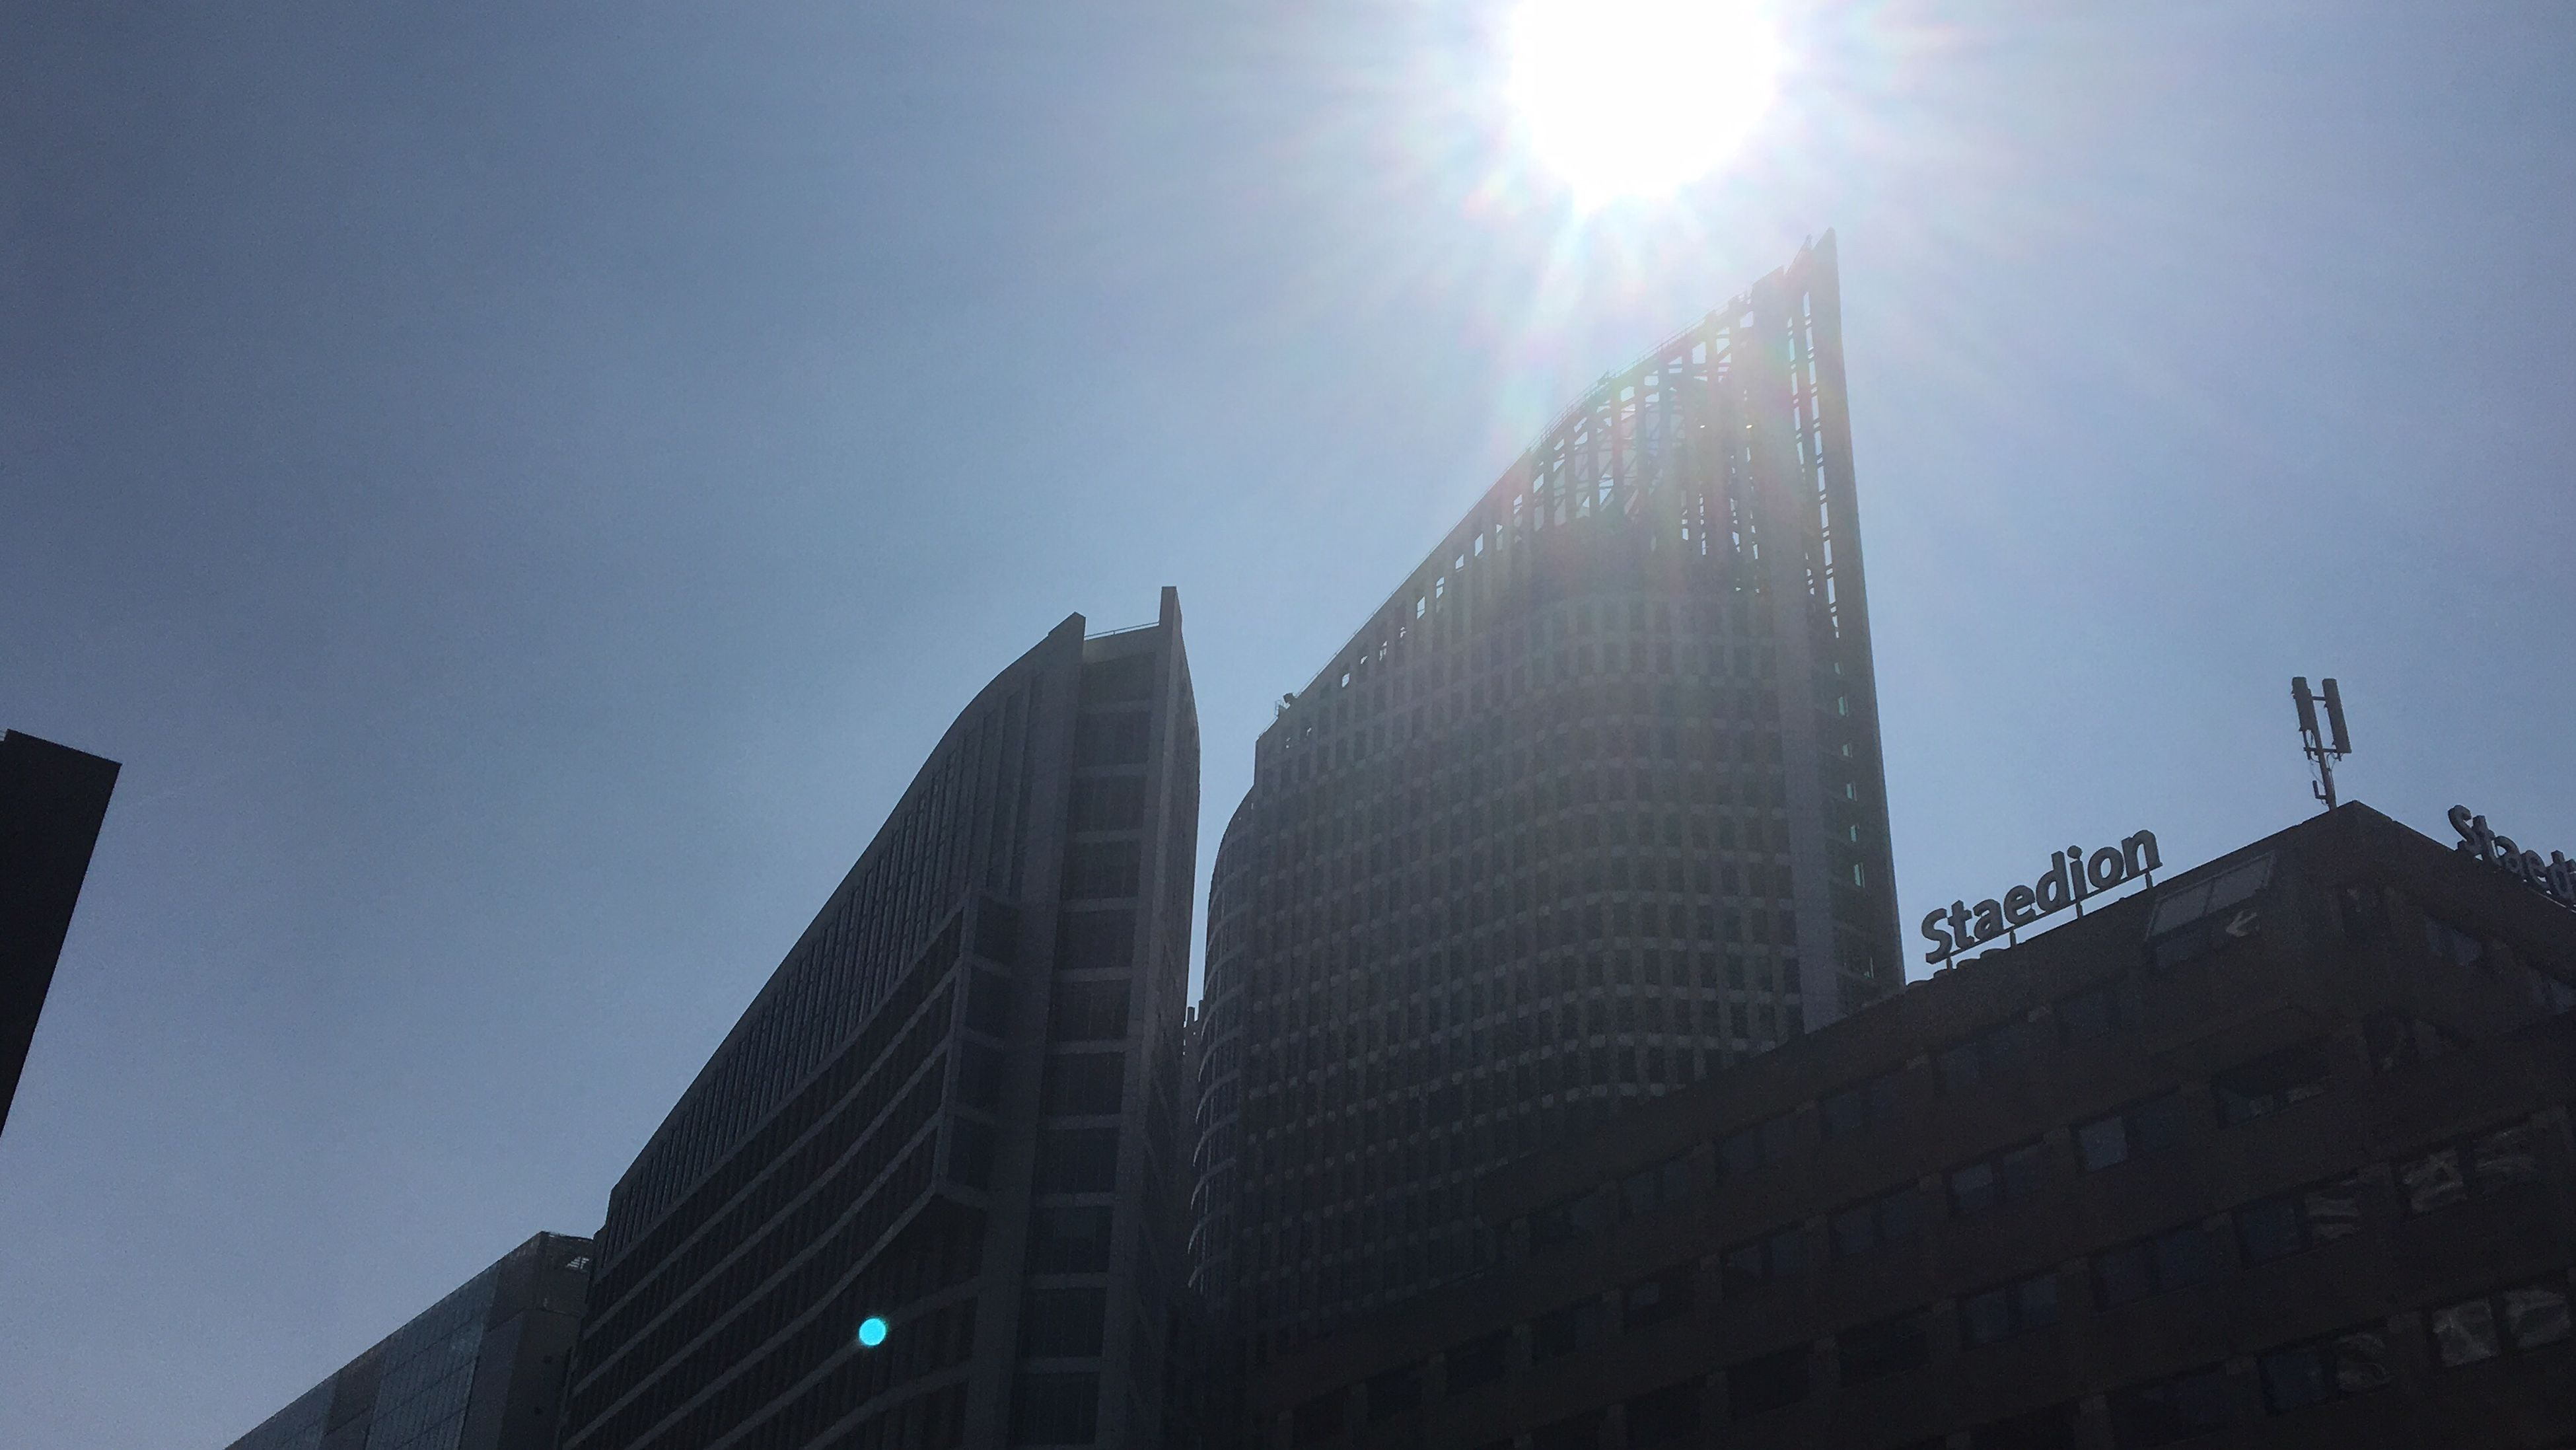 lens flare, sunlight, sunbeam, architecture, sun, skyscraper, built structure, building exterior, modern, low angle view, city, day, travel destinations, outdoors, no people, corporate business, sky